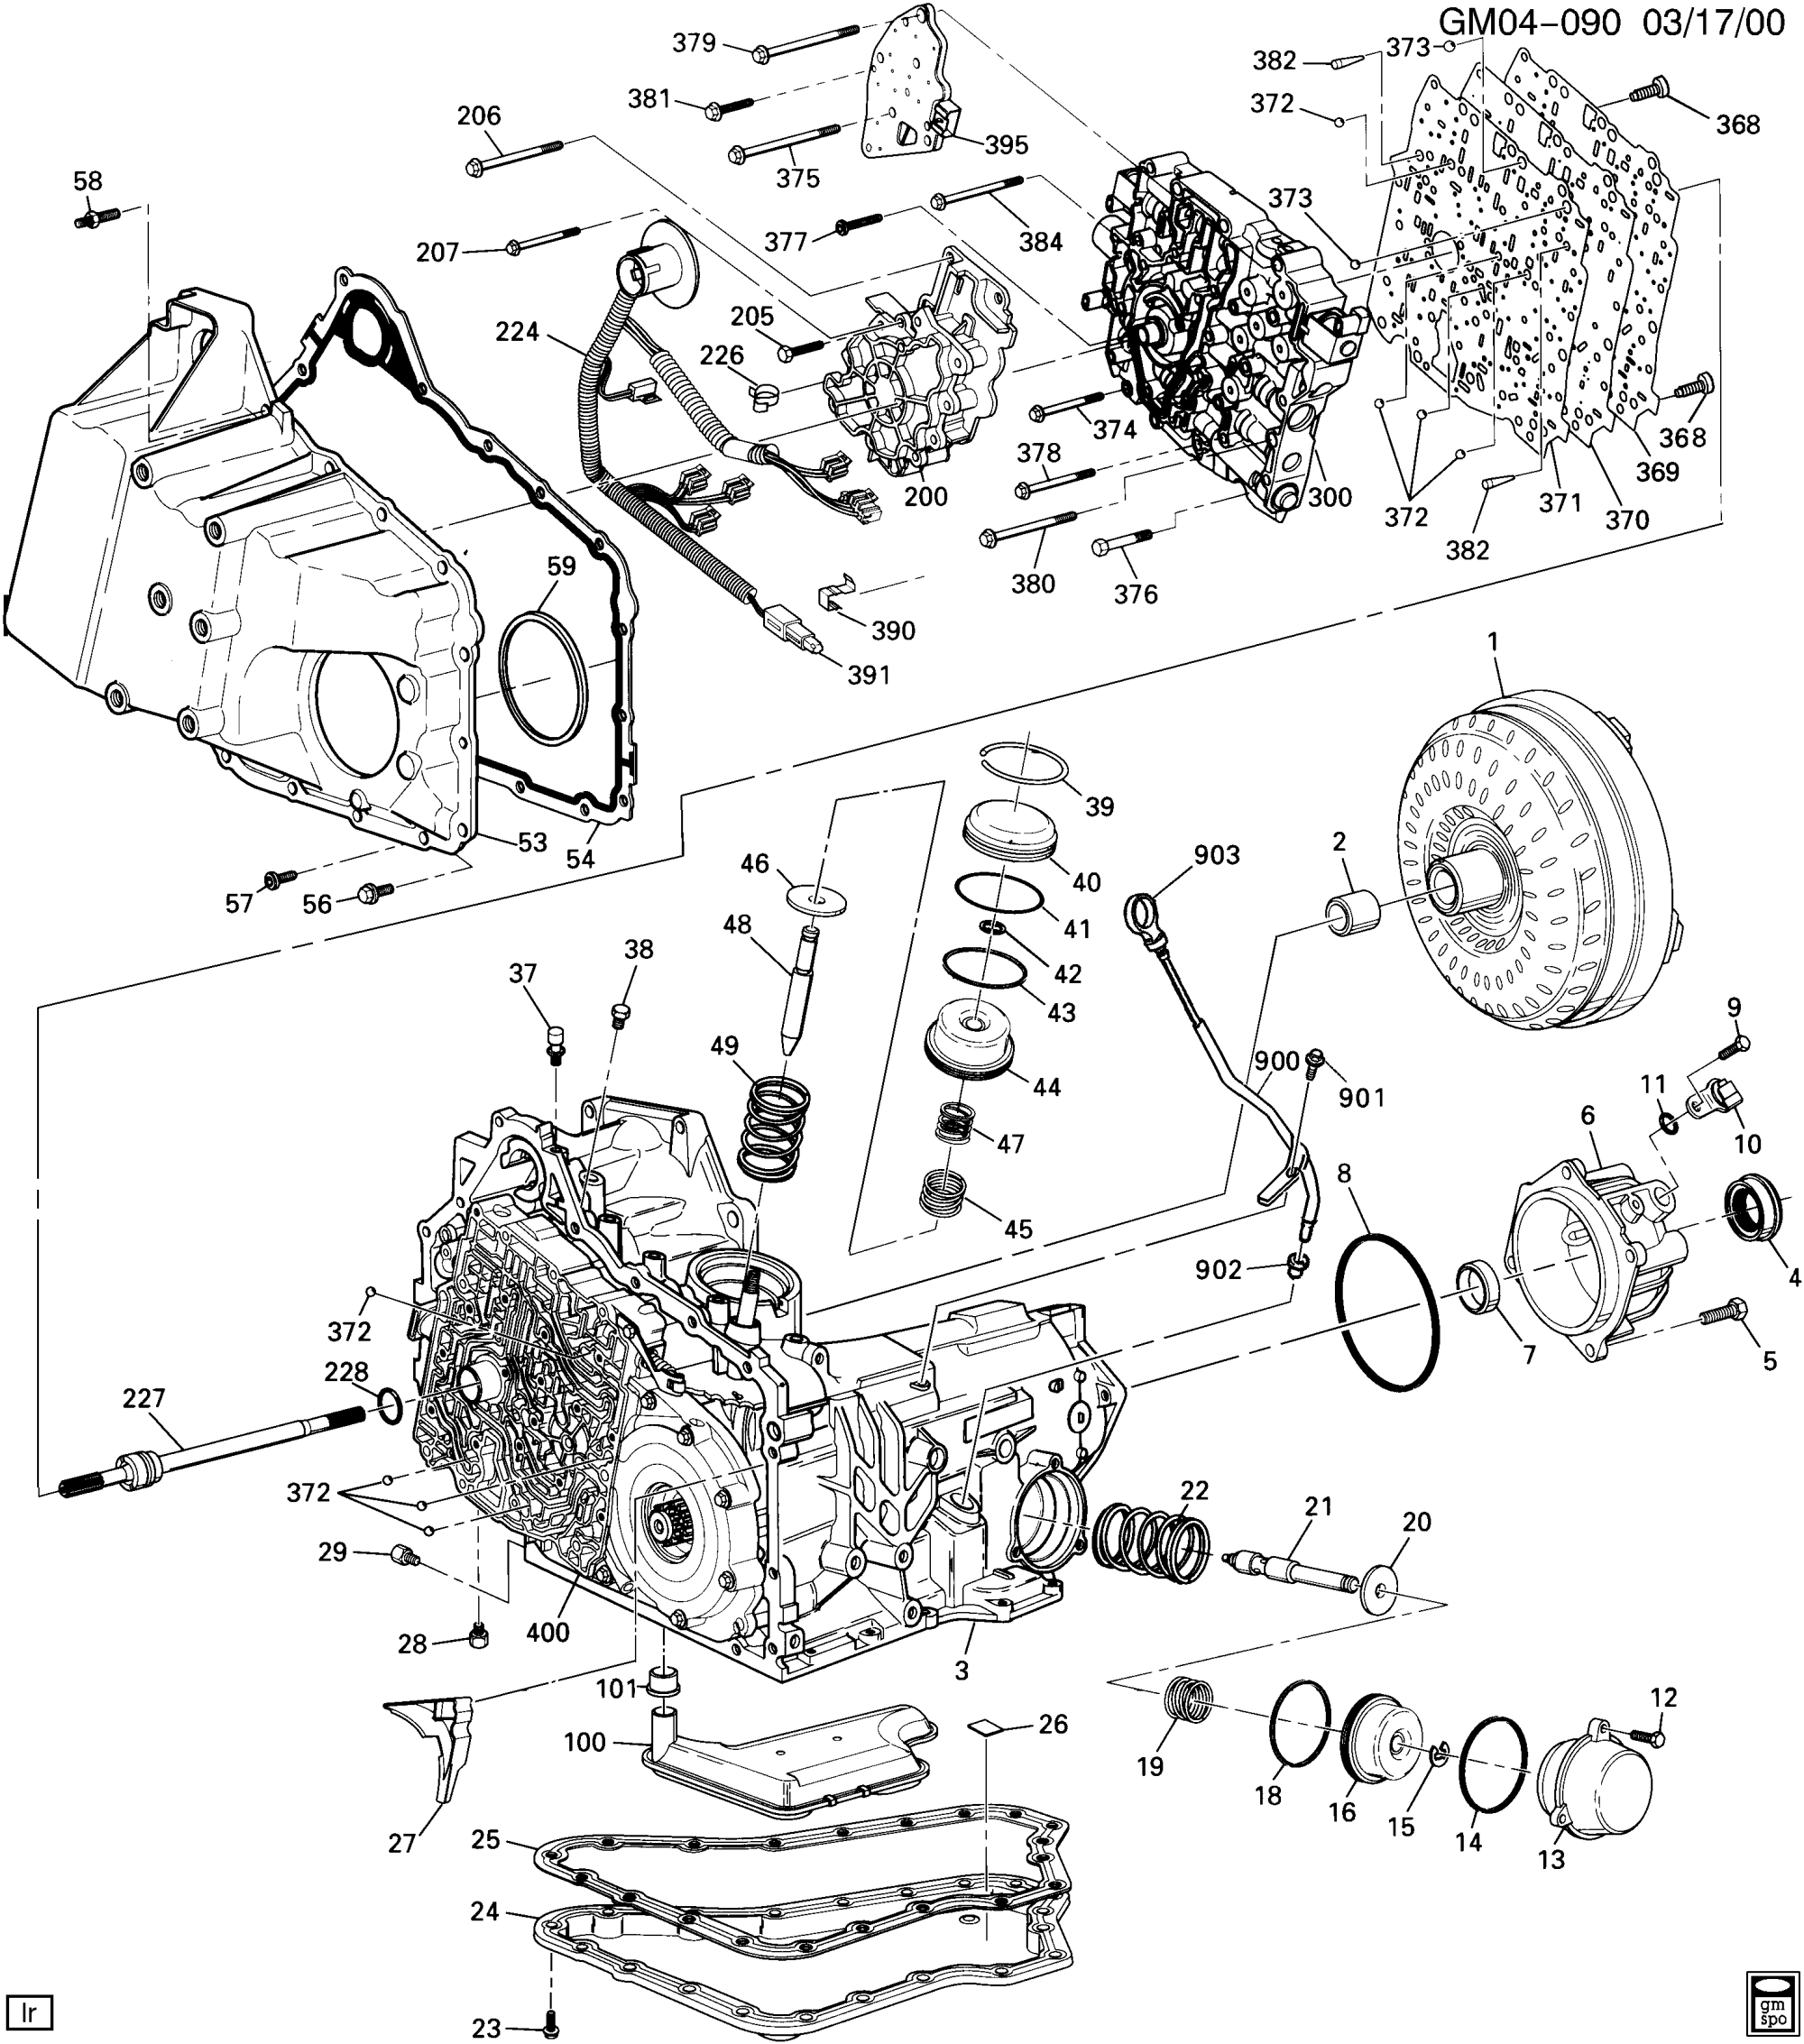 hight resolution of 4t65 transmission diagram wiring diagram blog related image with gm 4t65e transmission diagram